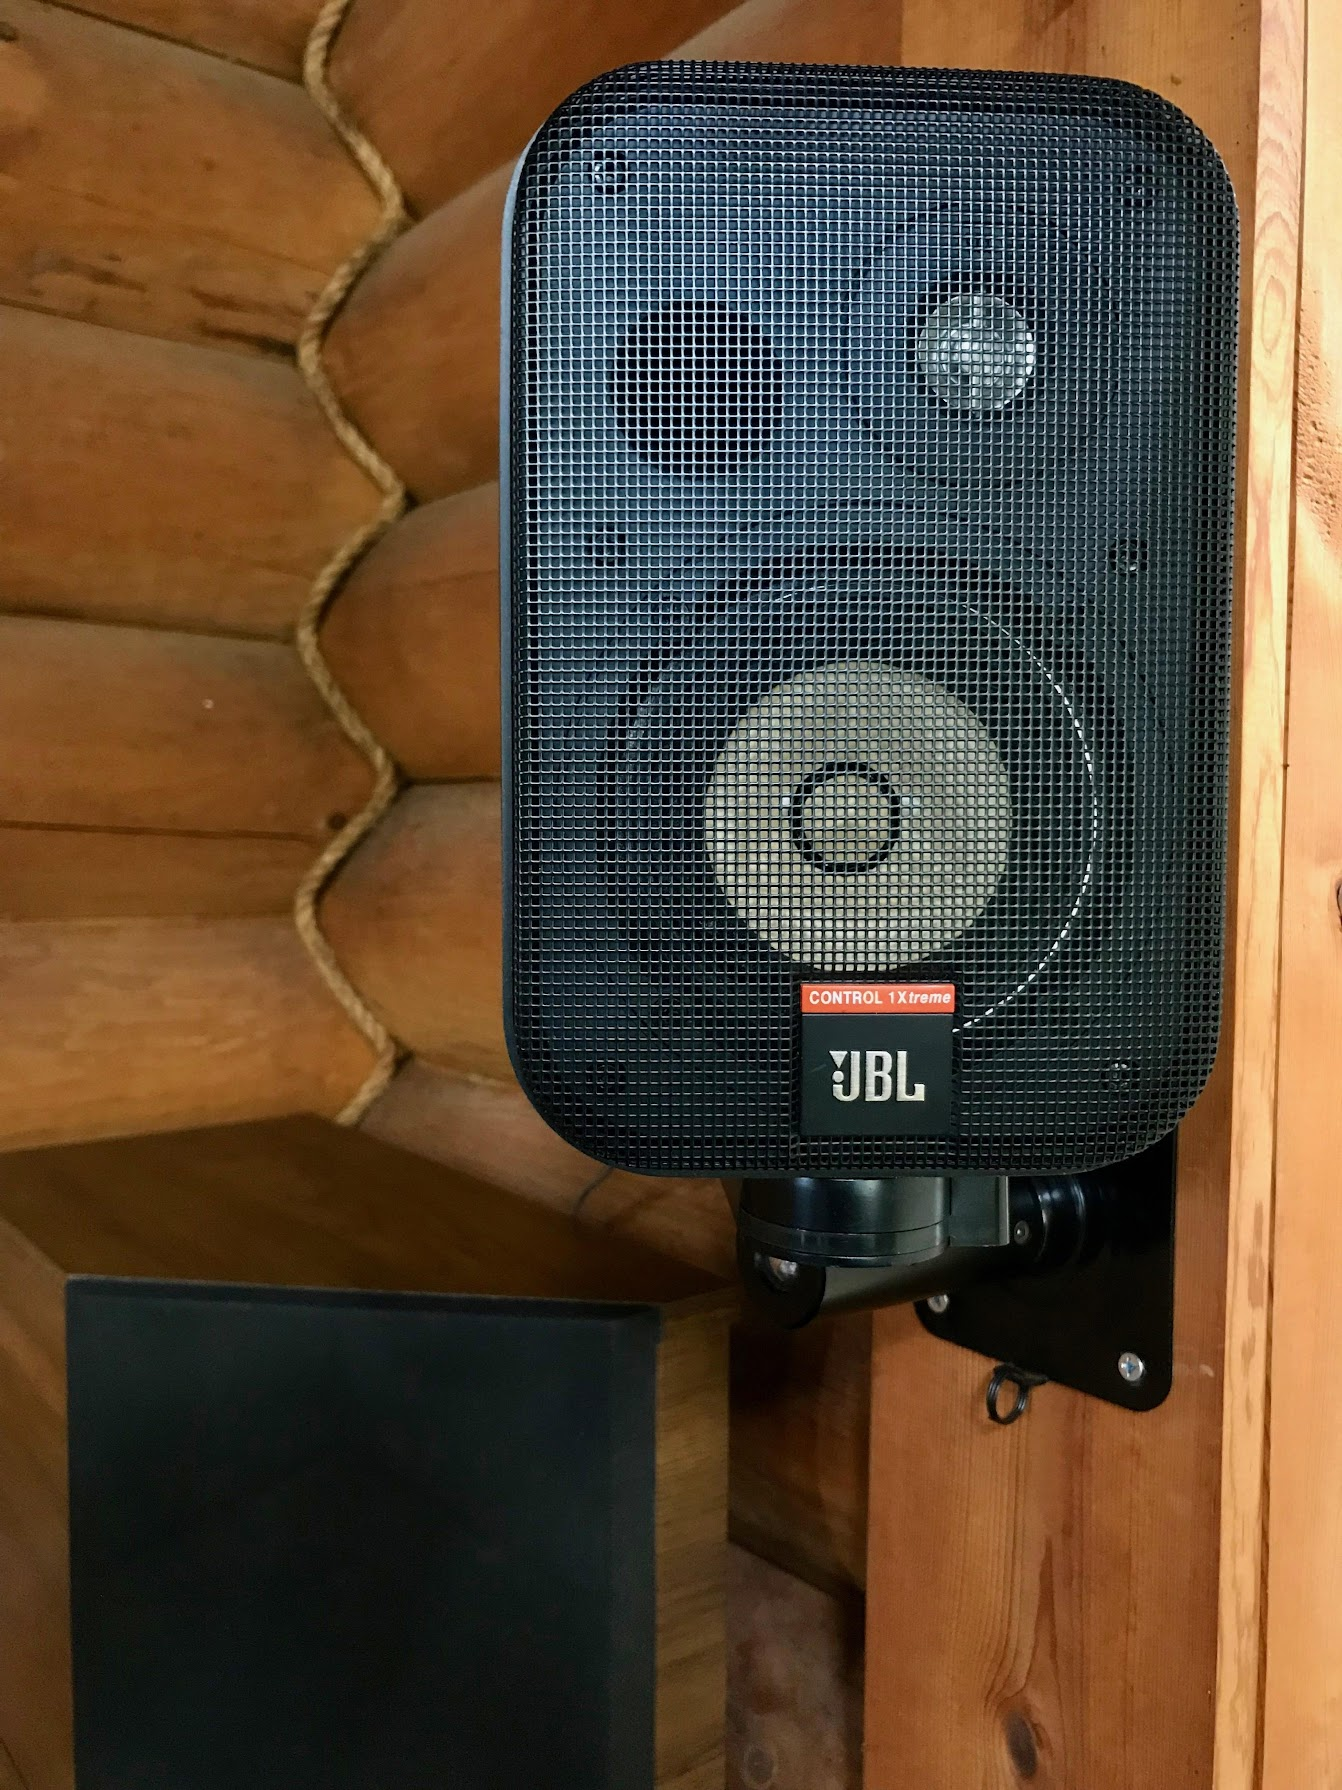 JBL Control 1Xtreme as TV Speakers — Part 4 – Monomaniac Garage